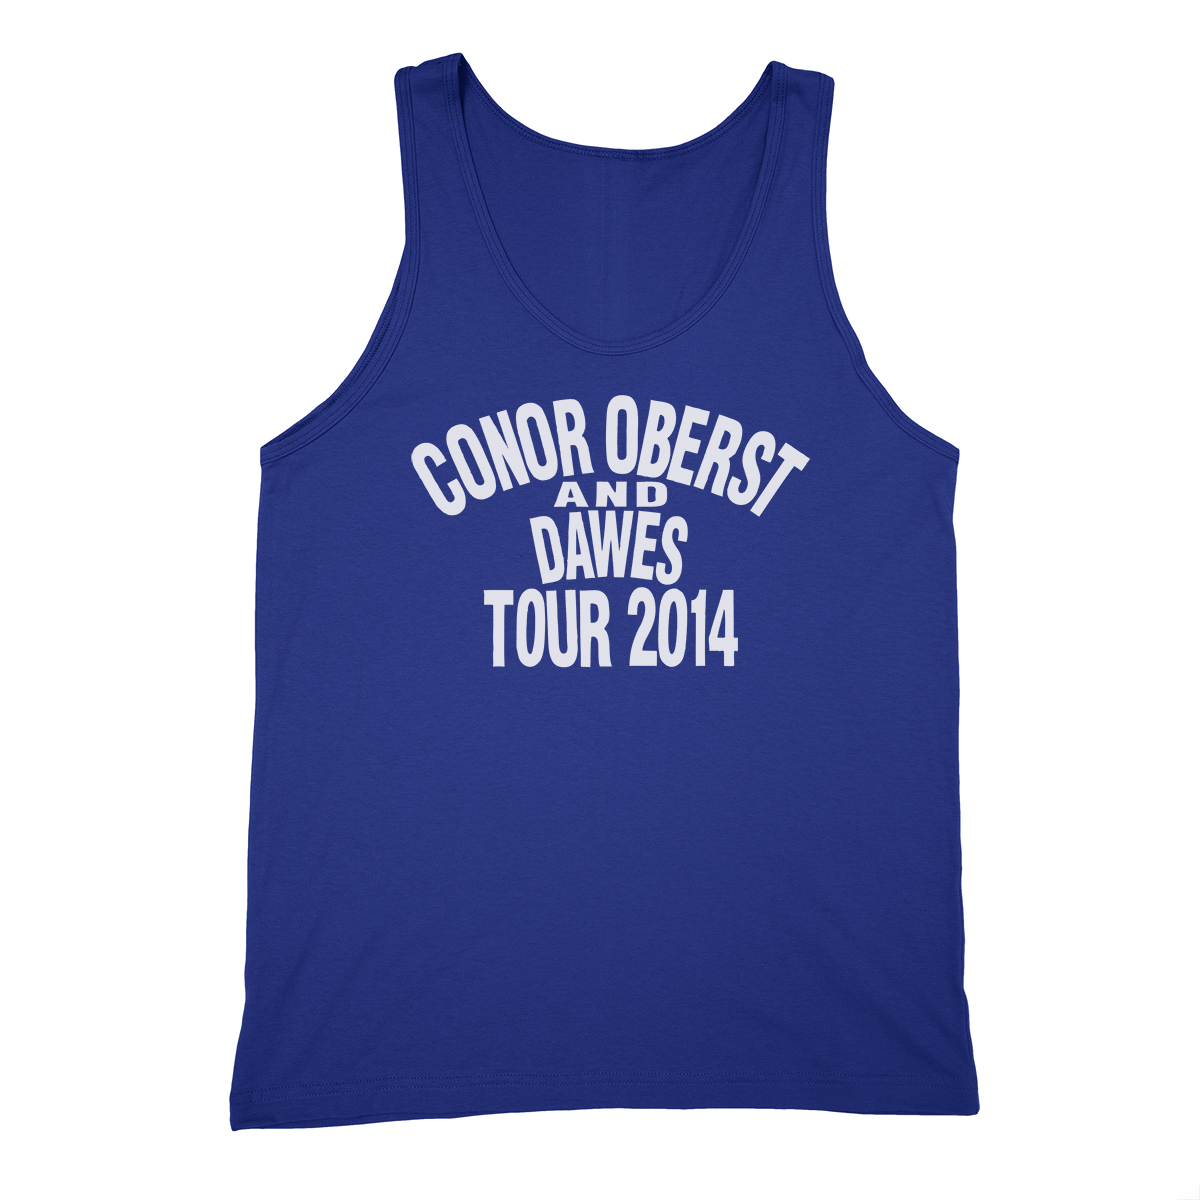 Dawes 2014 Tour Tank Top - Conor Oberst